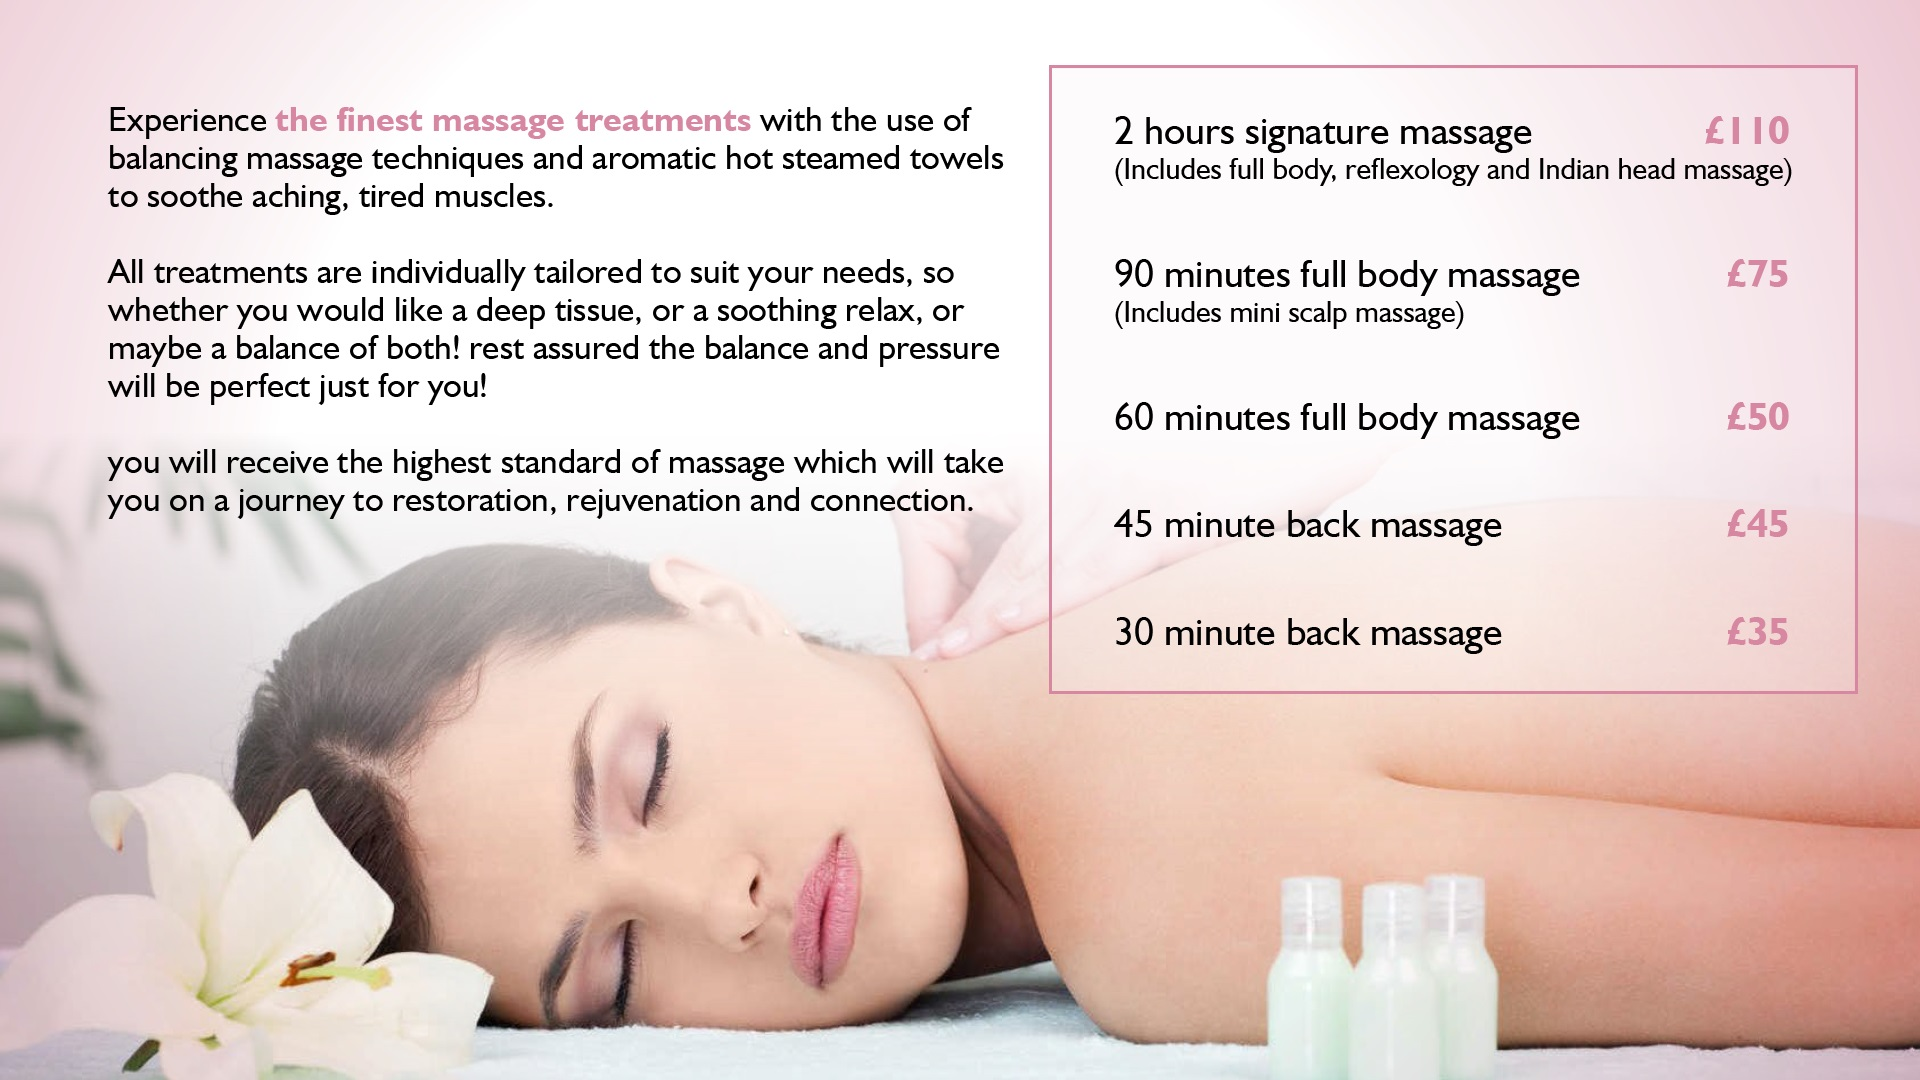 Experience the Finest Massage Treatments